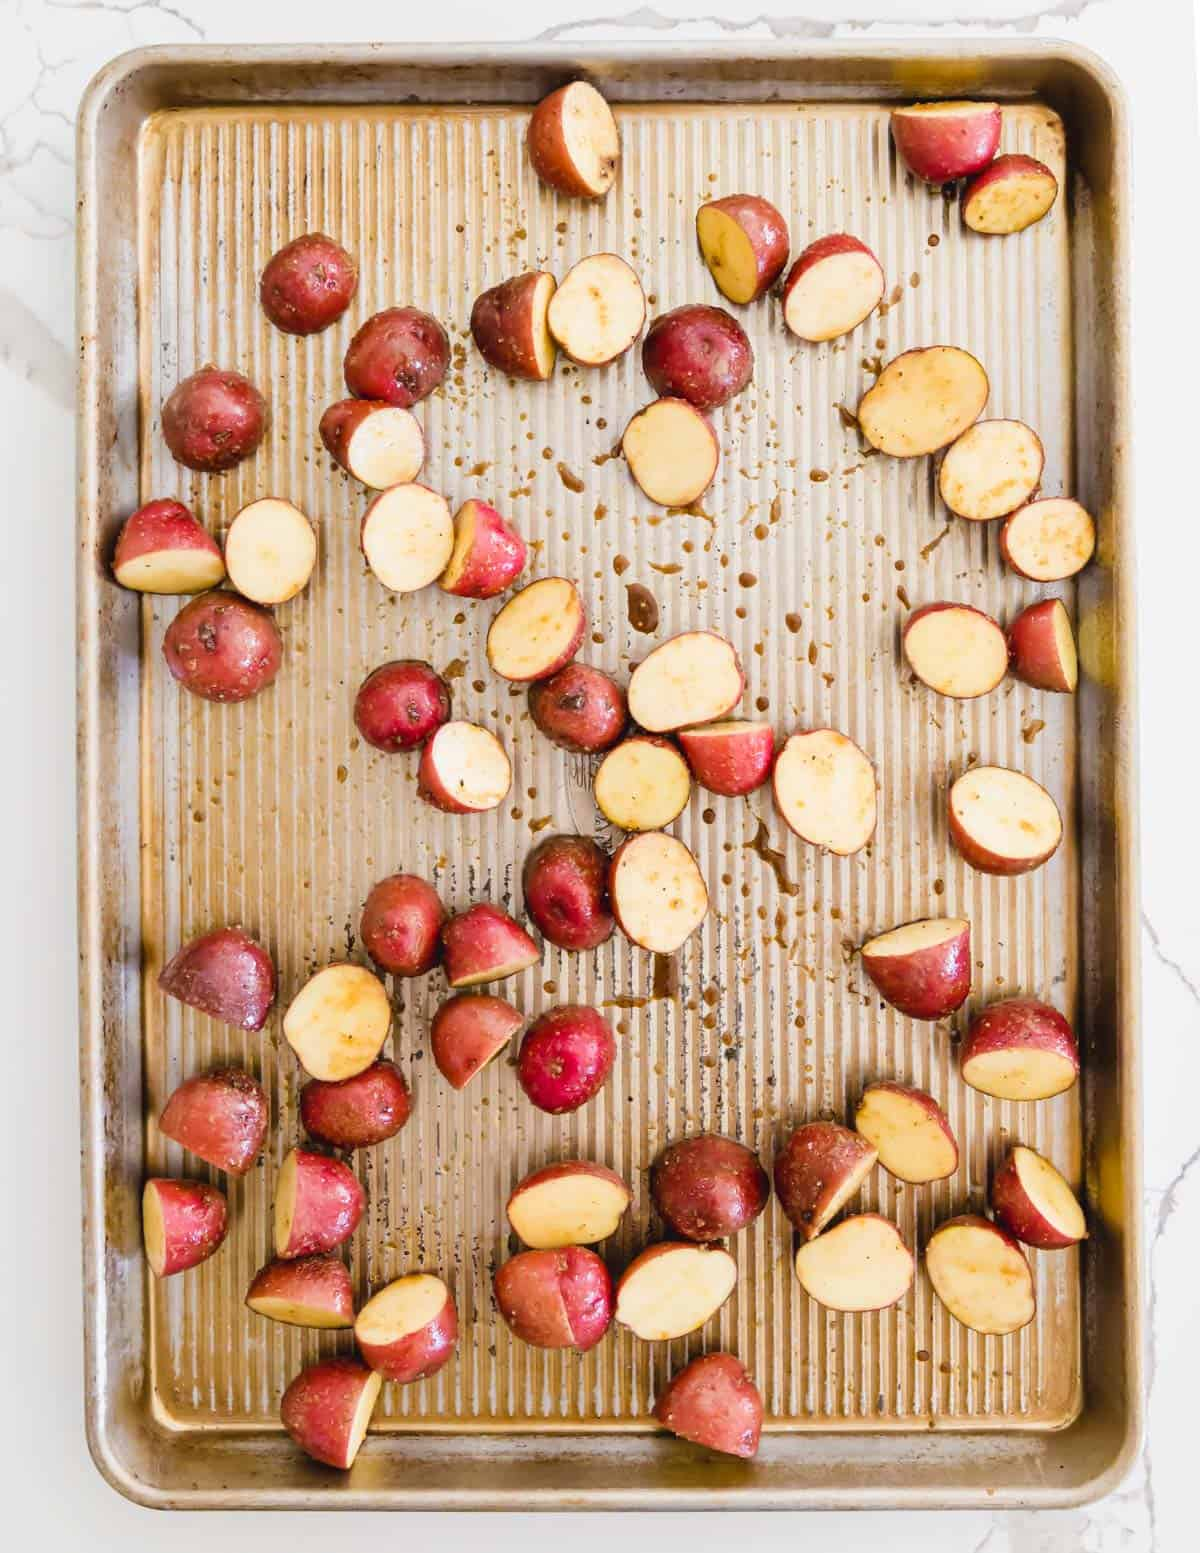 baby red potatoes on a sheet pan to roast with asparagus